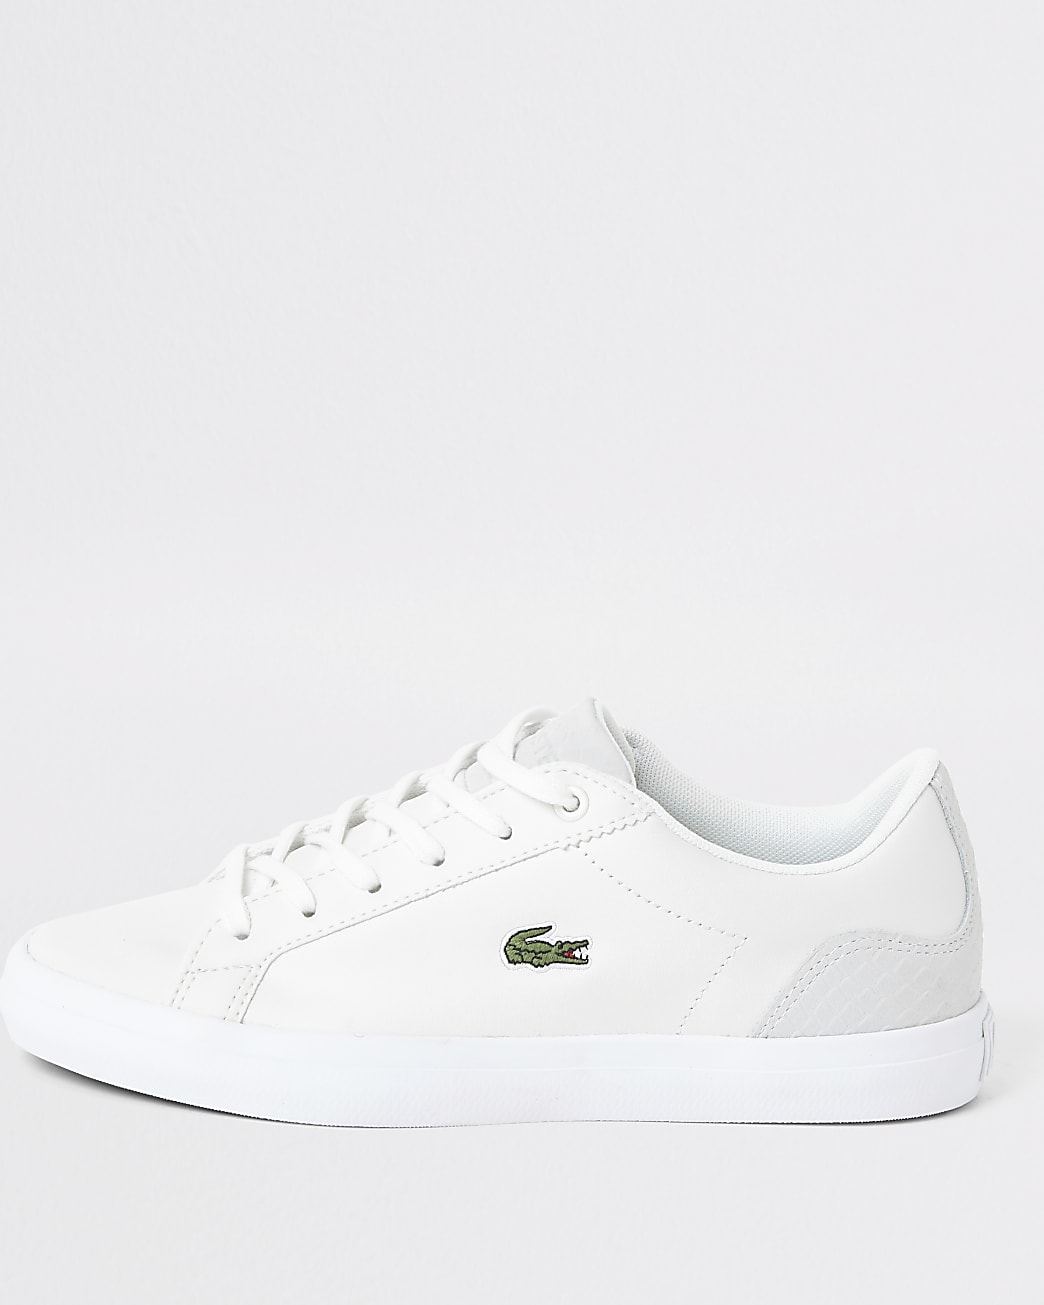 Lacoste white leather logo trainers